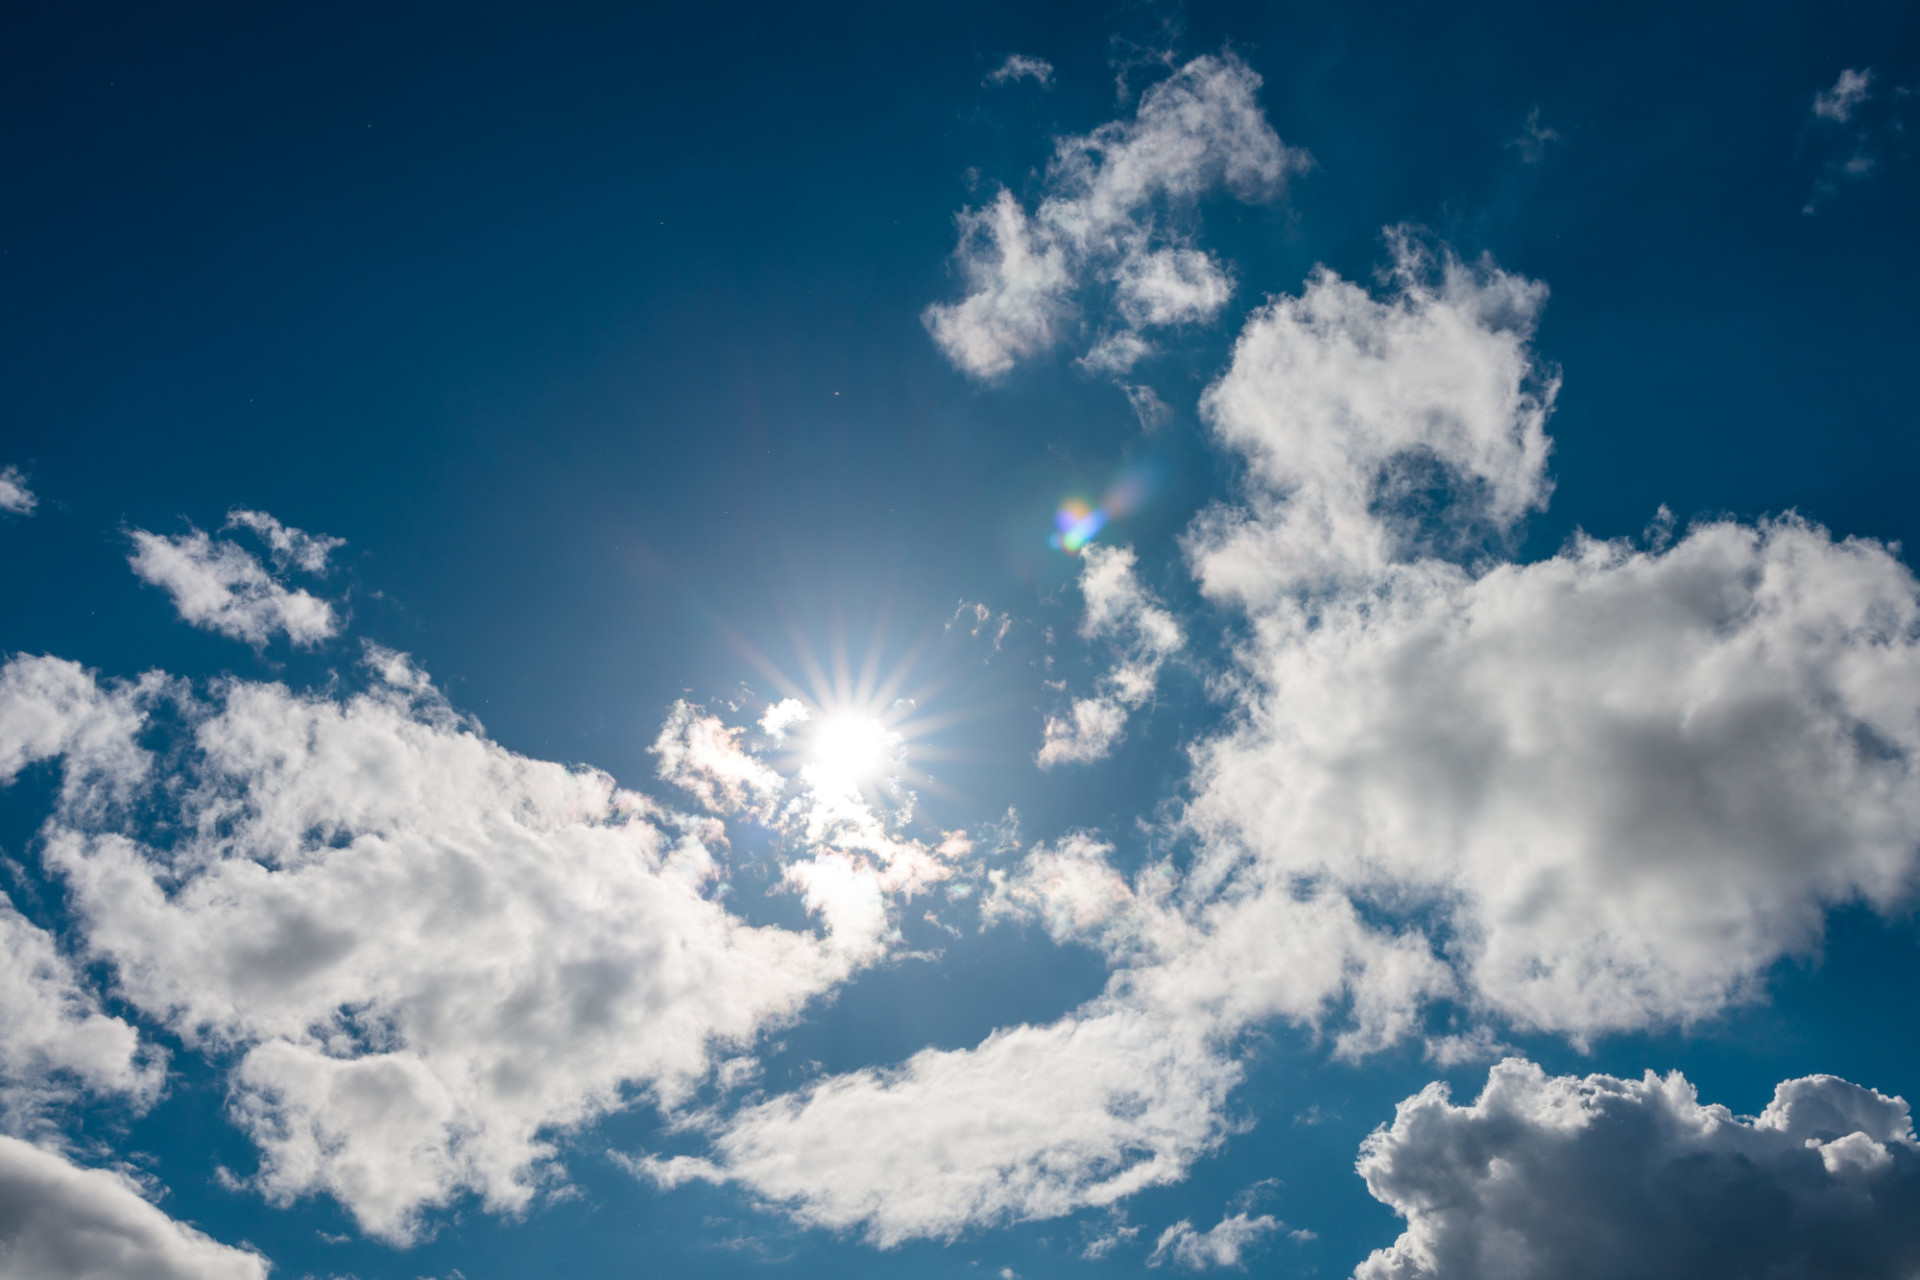 Sunny blue sky with clouds for sky replacement